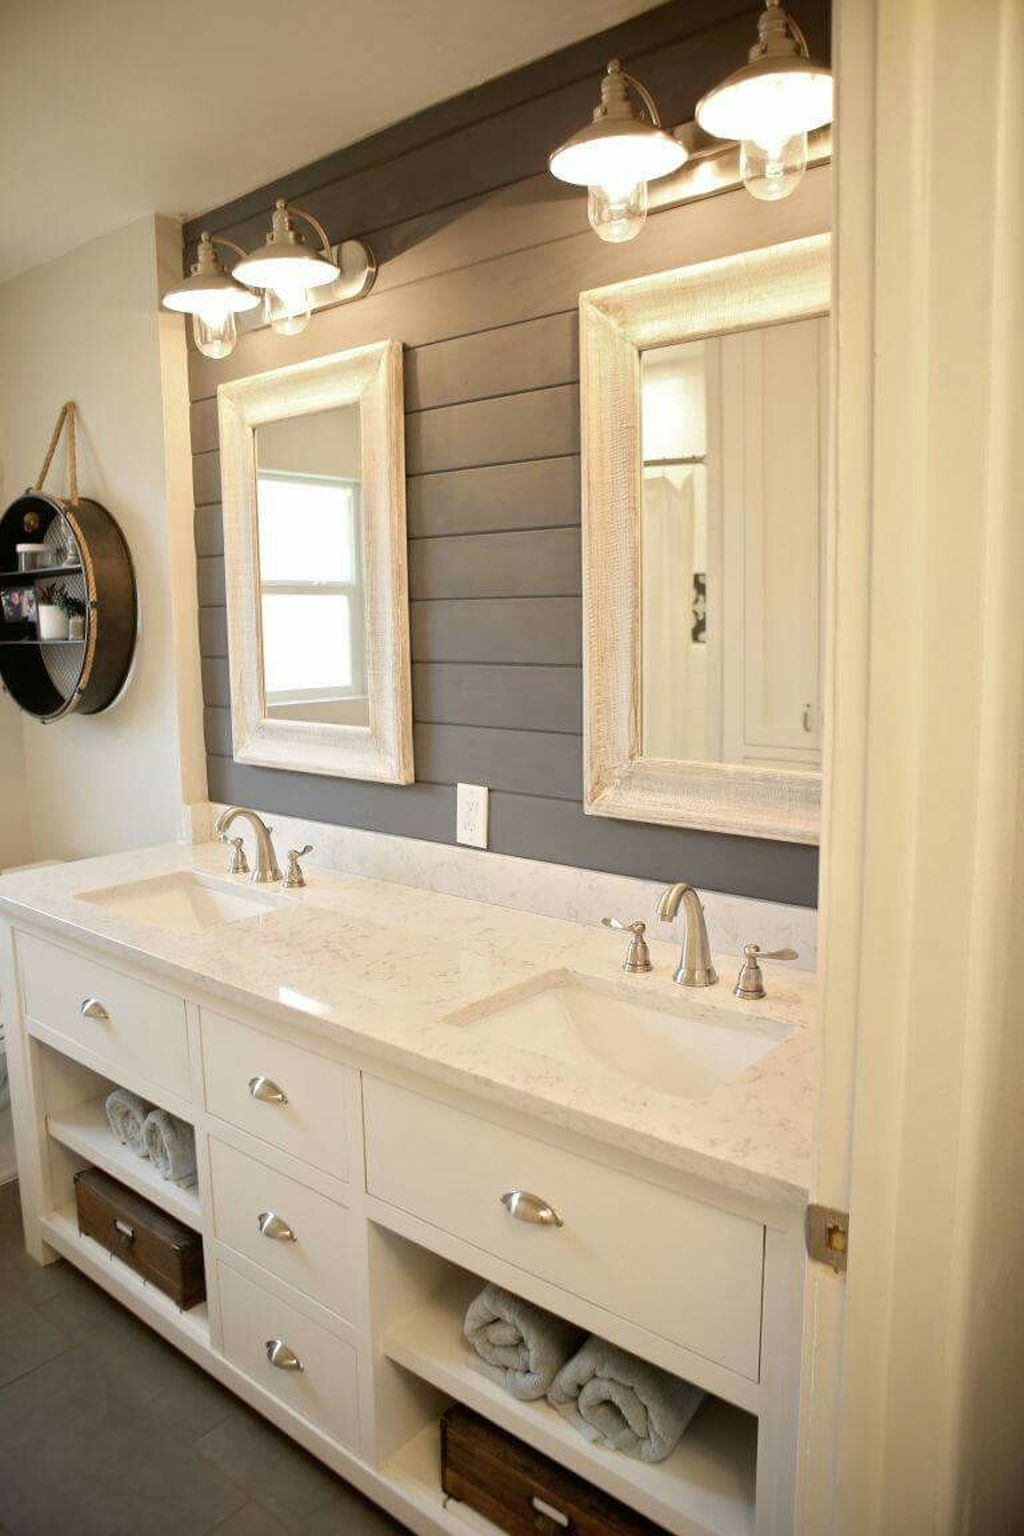 Awesome 64 Cheap And Easy Diy Bathroom Vanity Makeover Ideas  Http://about Ruth.com/2017/06/07/64 Cheap And Easy Diy Bathroom Vanity  Makeover Ideas/